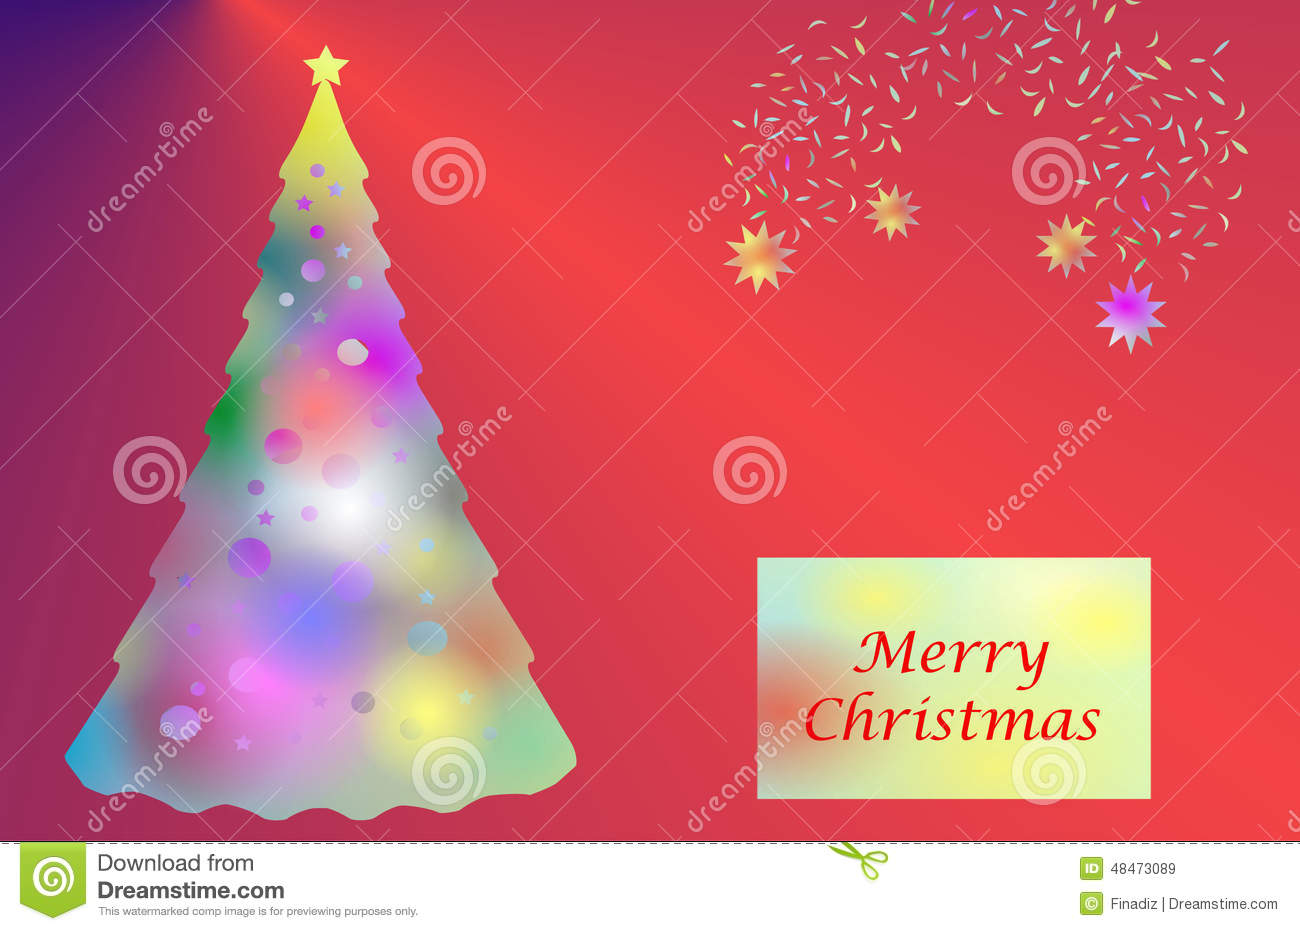 Christmas Compliment Stock Illustrations 900 Christmas Compliment Stock Illustrations Vectors Clipart Dreamstime